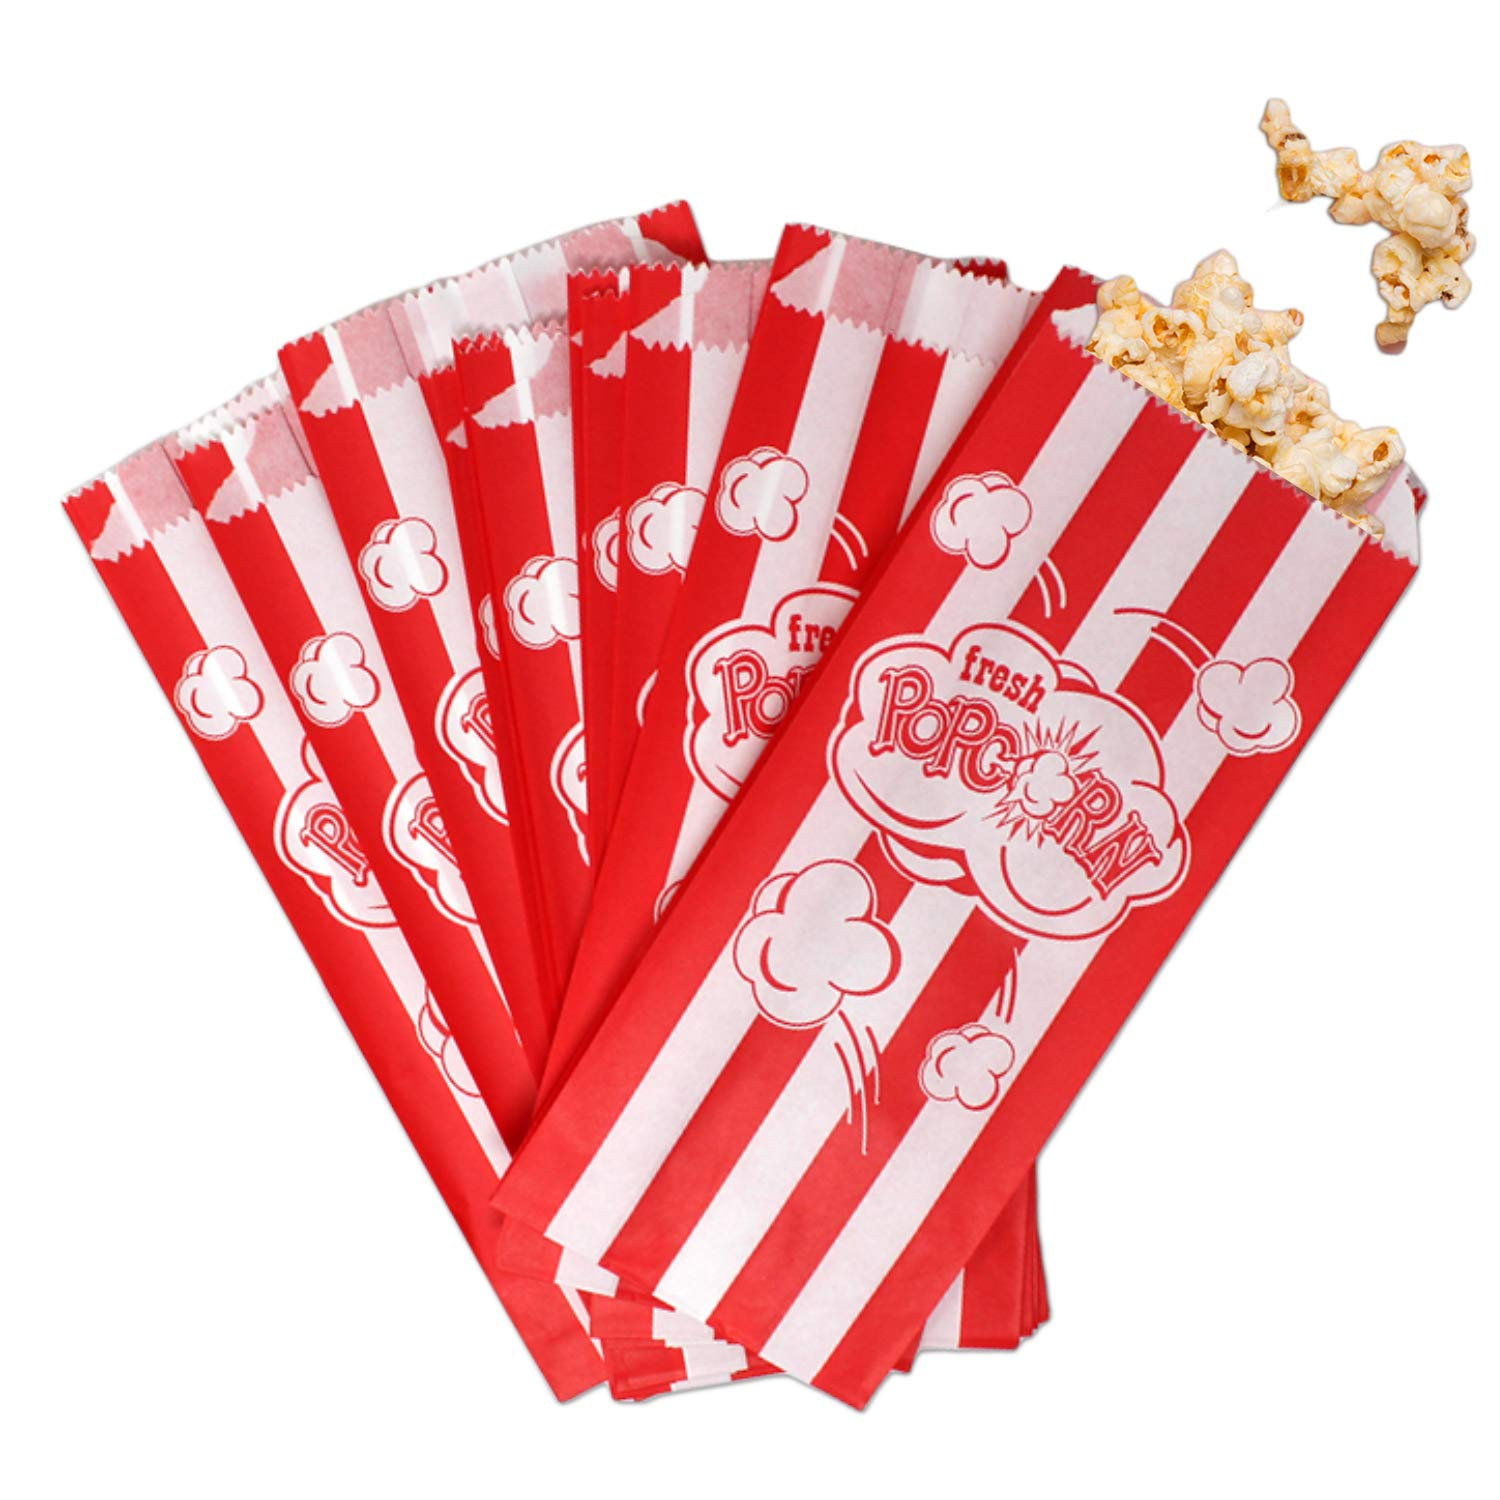 """and More 8.75/"""" x 3.5/"""" Classroom Party Favors 50 Count Premium Popcorn Bags Fresh Disposable Popcorn Bags for Movie Night"""